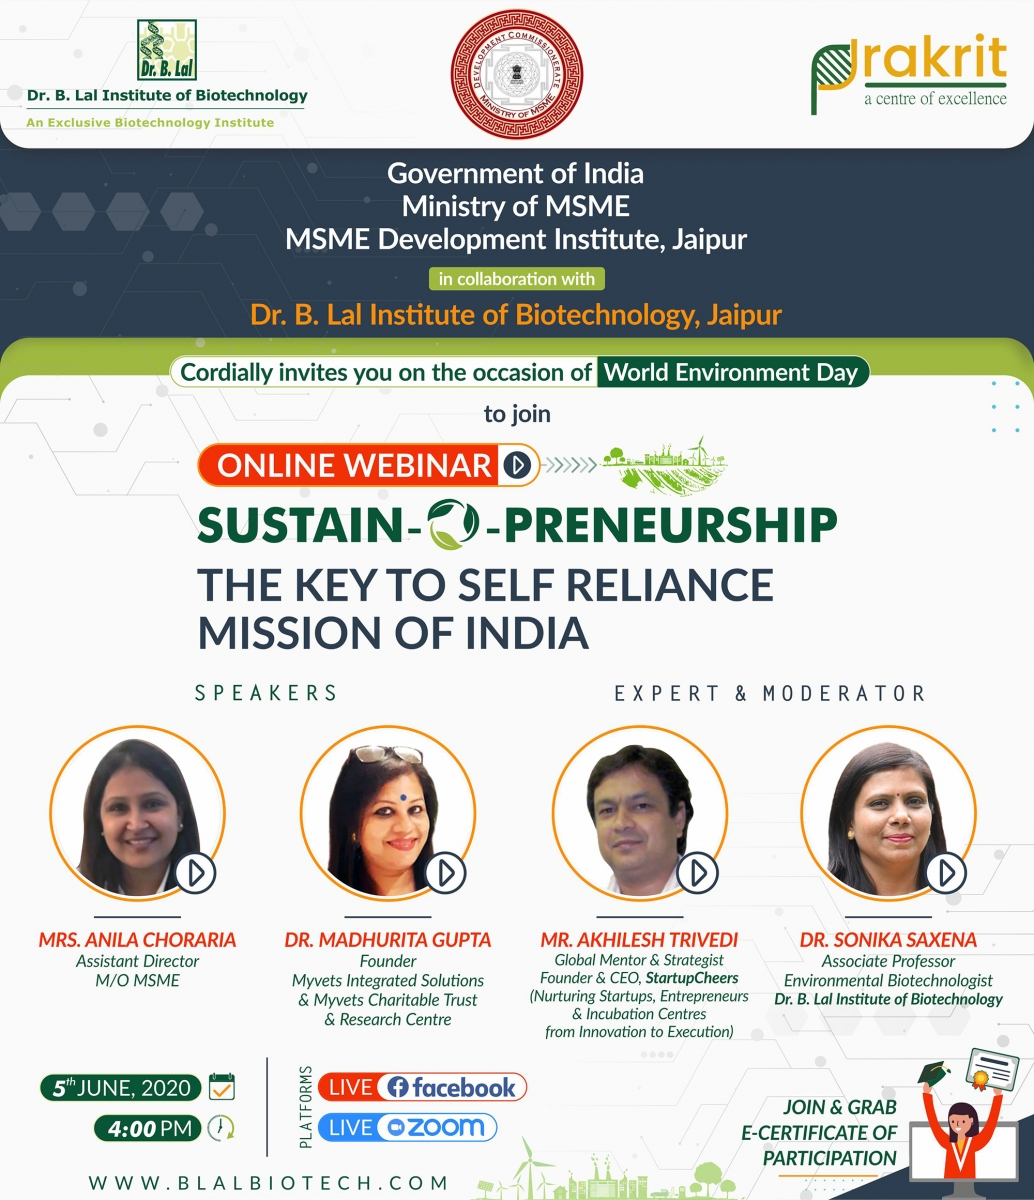 Online Webinar   SUSTAIN-O-PRENEURSHIP: The Key to Self Reliance Mission of India   Dr. B. Lal Institute of Biotechnology, Jaipur